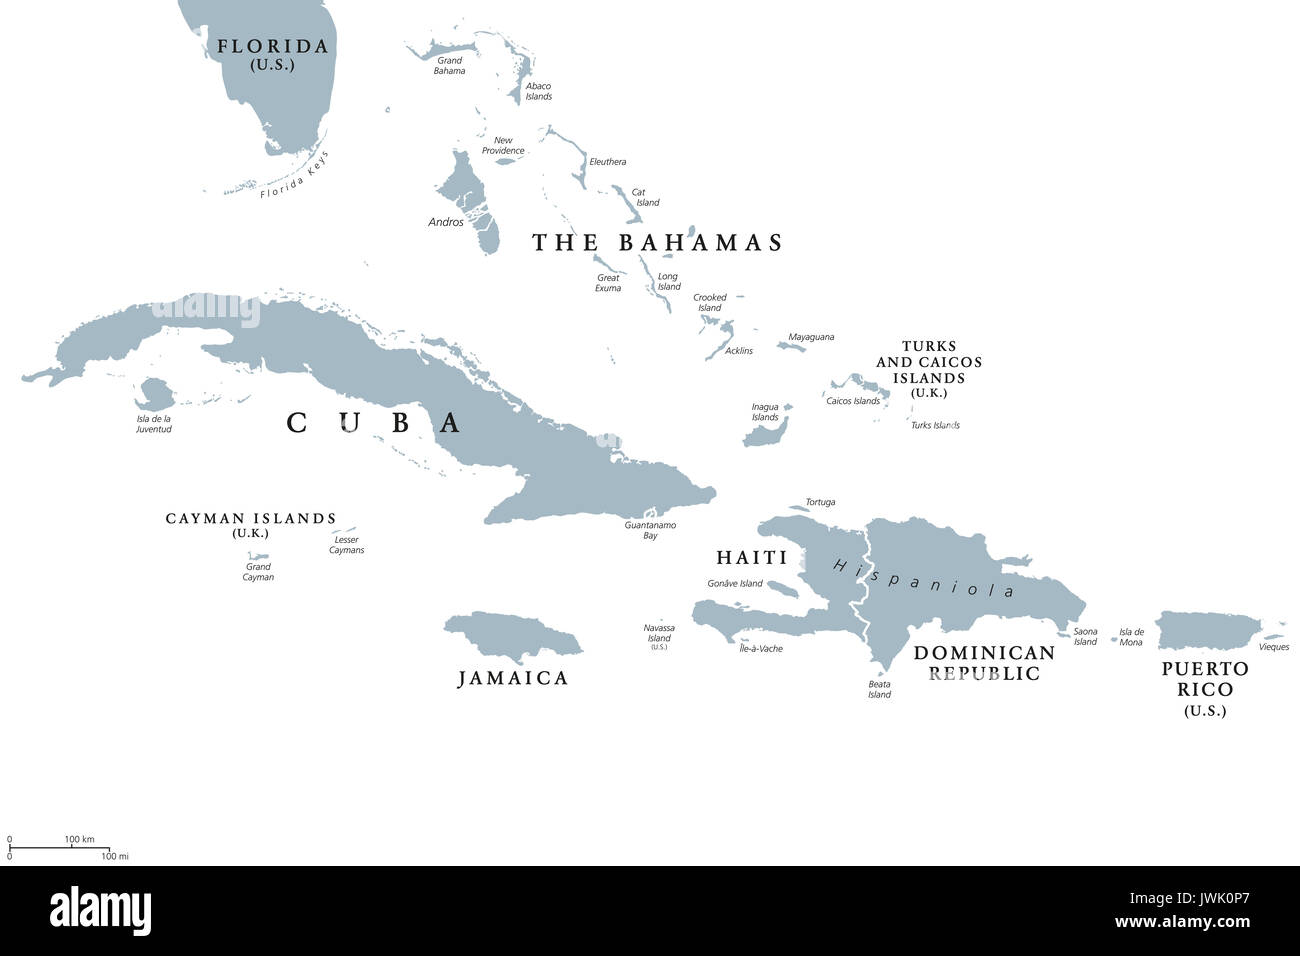 Greater Antilles political map with English labeling. Grouping of the larger islands in the Caribbean Sea with Cuba, Hispaniola, Puerto Rico, Jamaica. - Stock Image